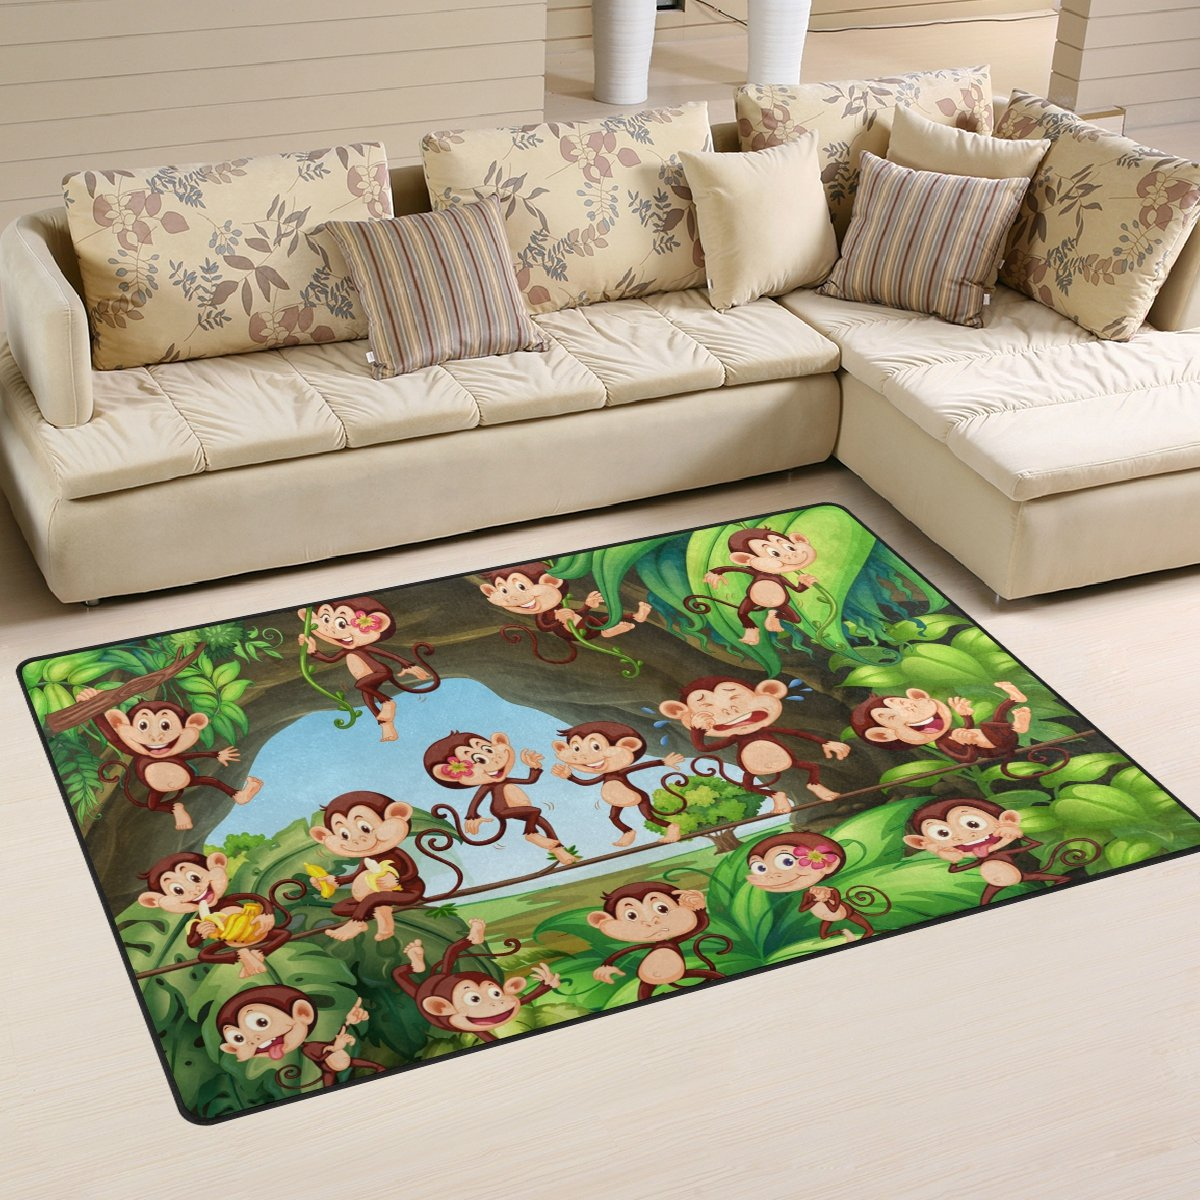 WellLee Animal Area Rug,Monkeys Family Forest Floor Rug Non-slip Doormat for Living Dining Dorm Room Bedroom Decor 60x39 Inch